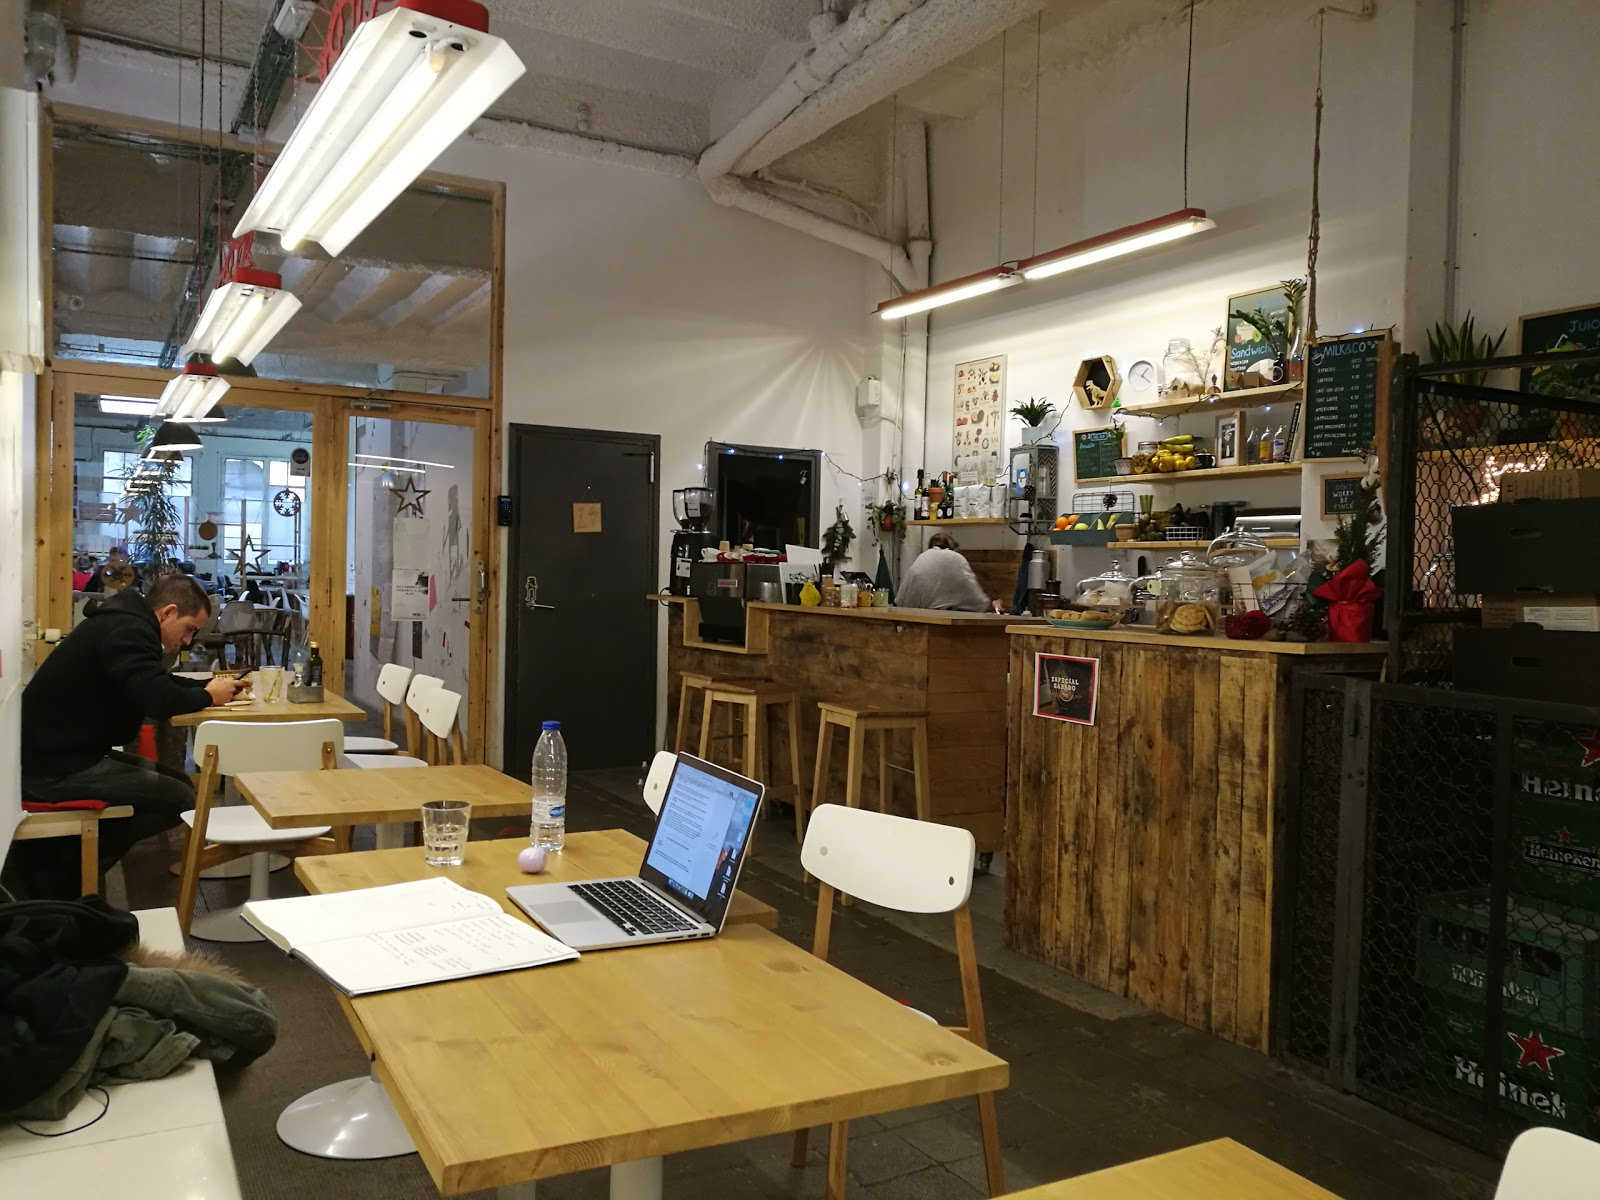 FabCafe Barcelona: A Work-Friendly Place in Barcelona